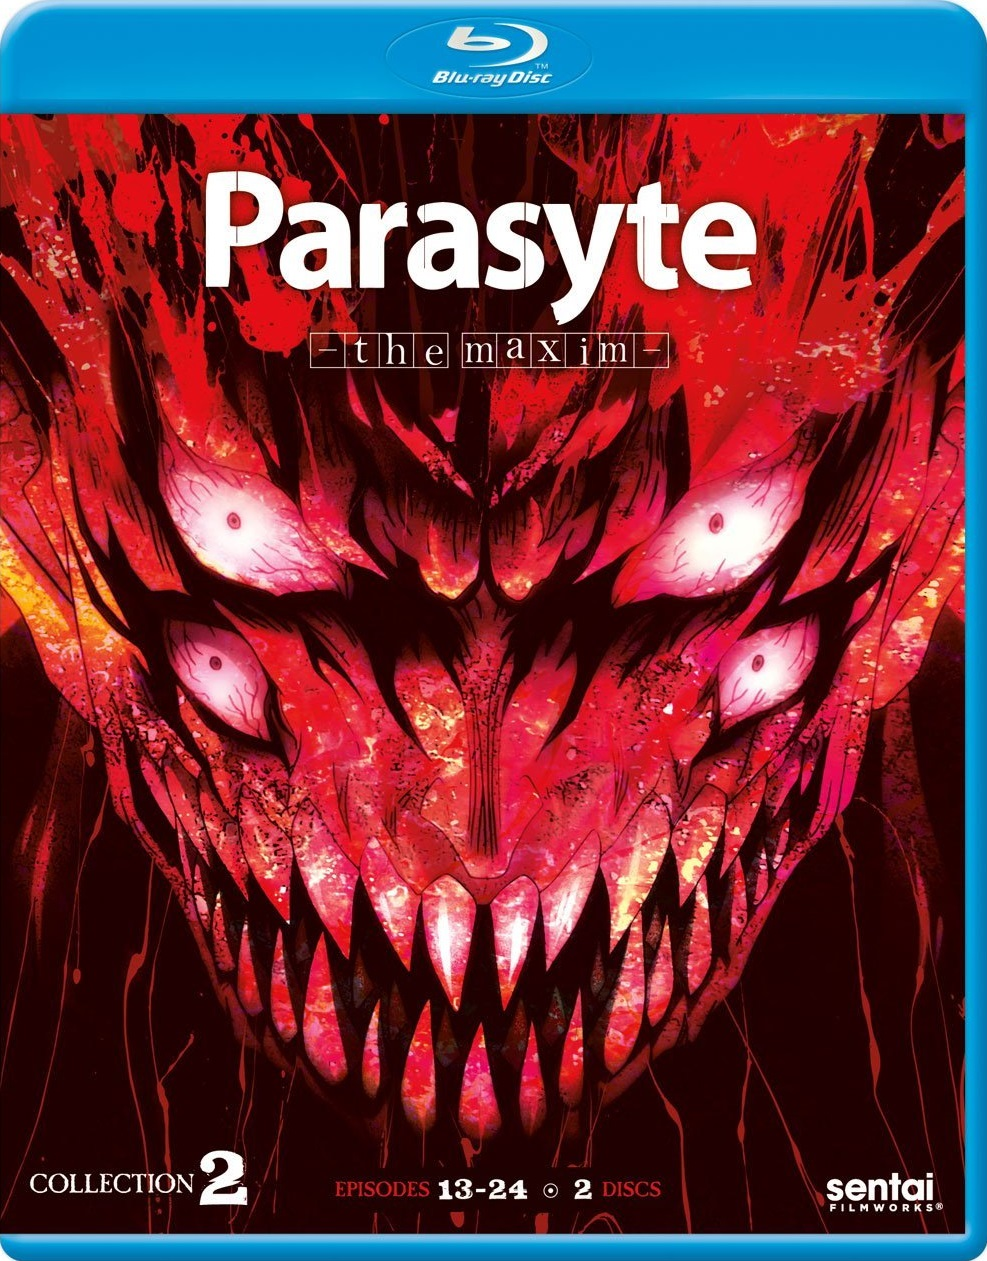 parasyte-the-maxim-collection-2-box-art